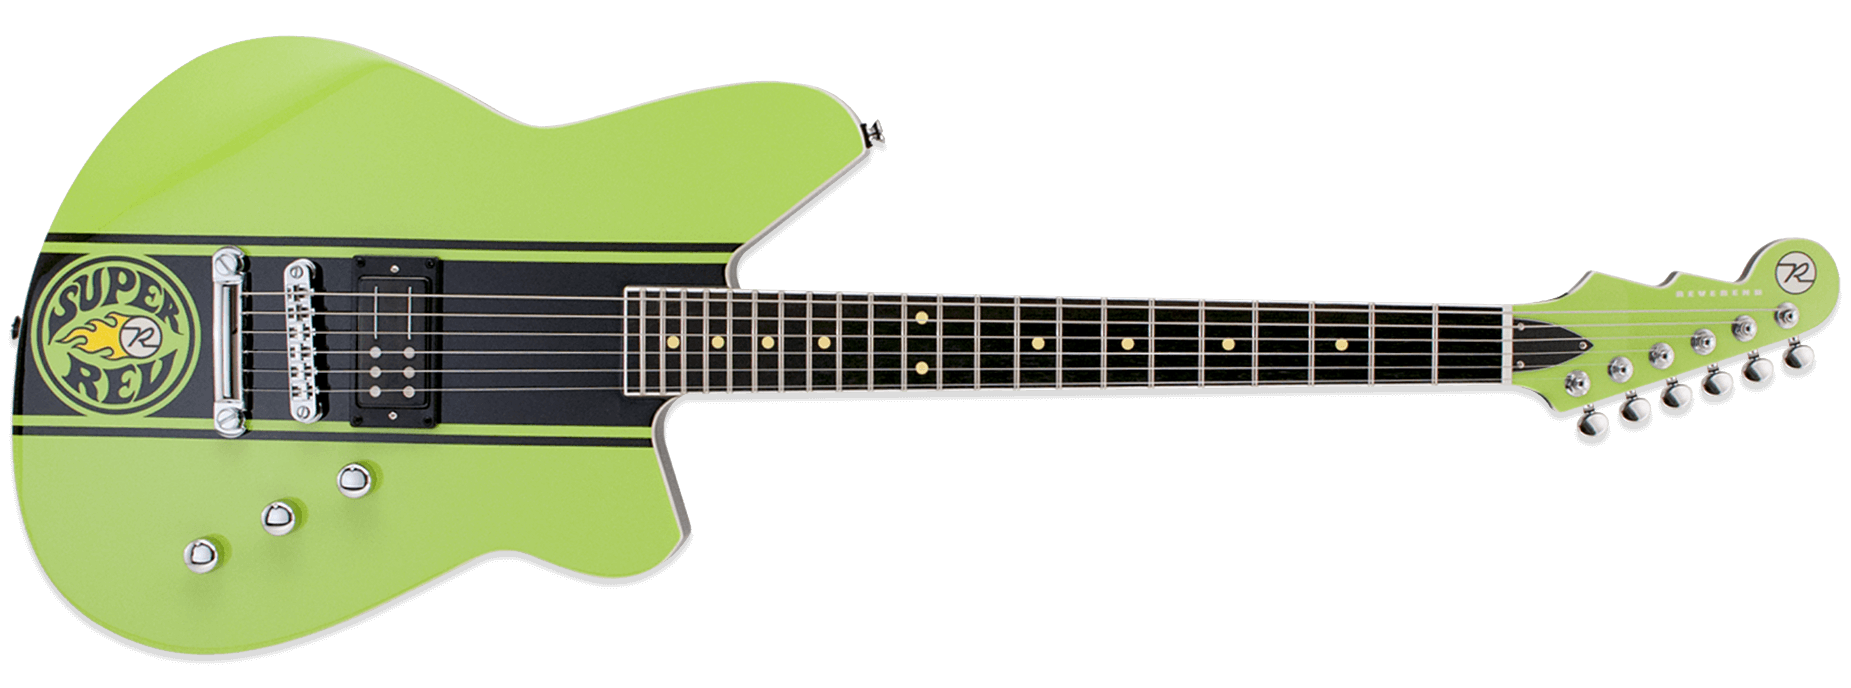 Reverend Super Rev 69 Lime